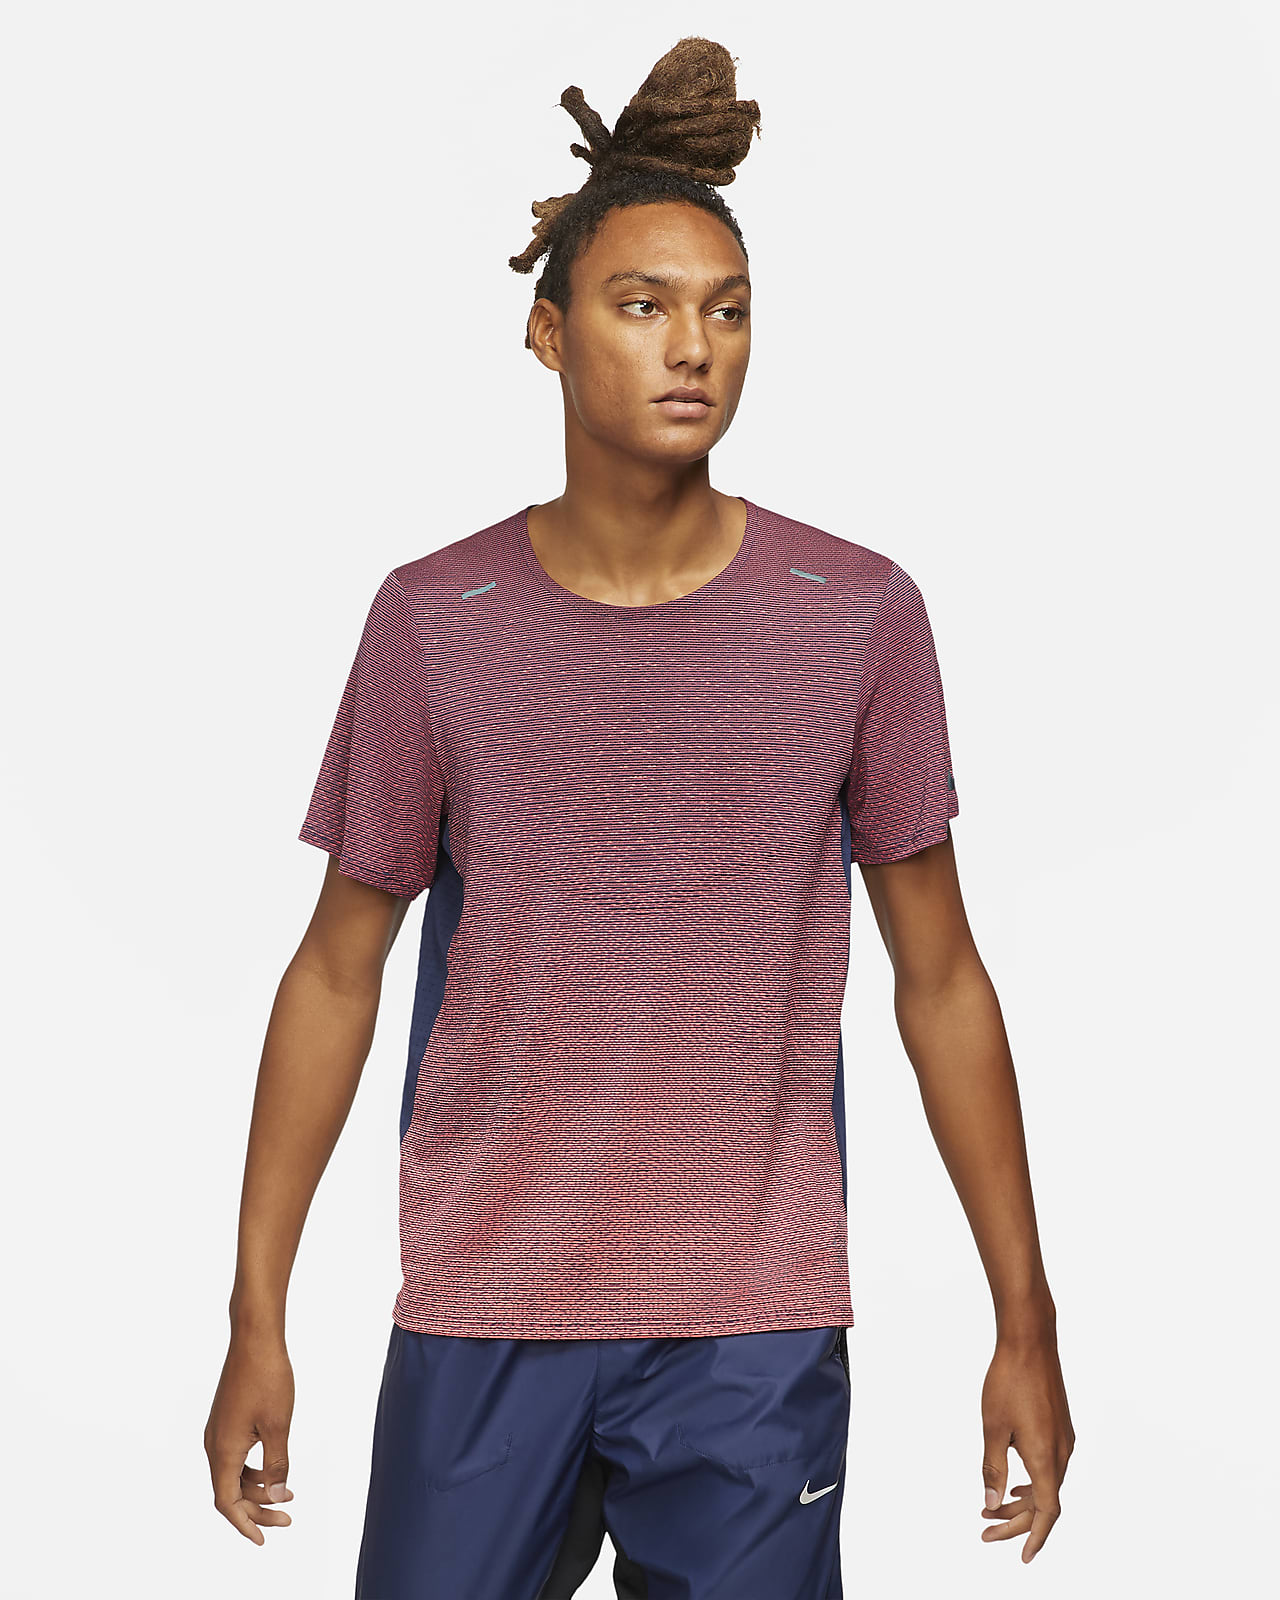 Camisola de running de manga curta Nike Pinnacle Run Division para homem